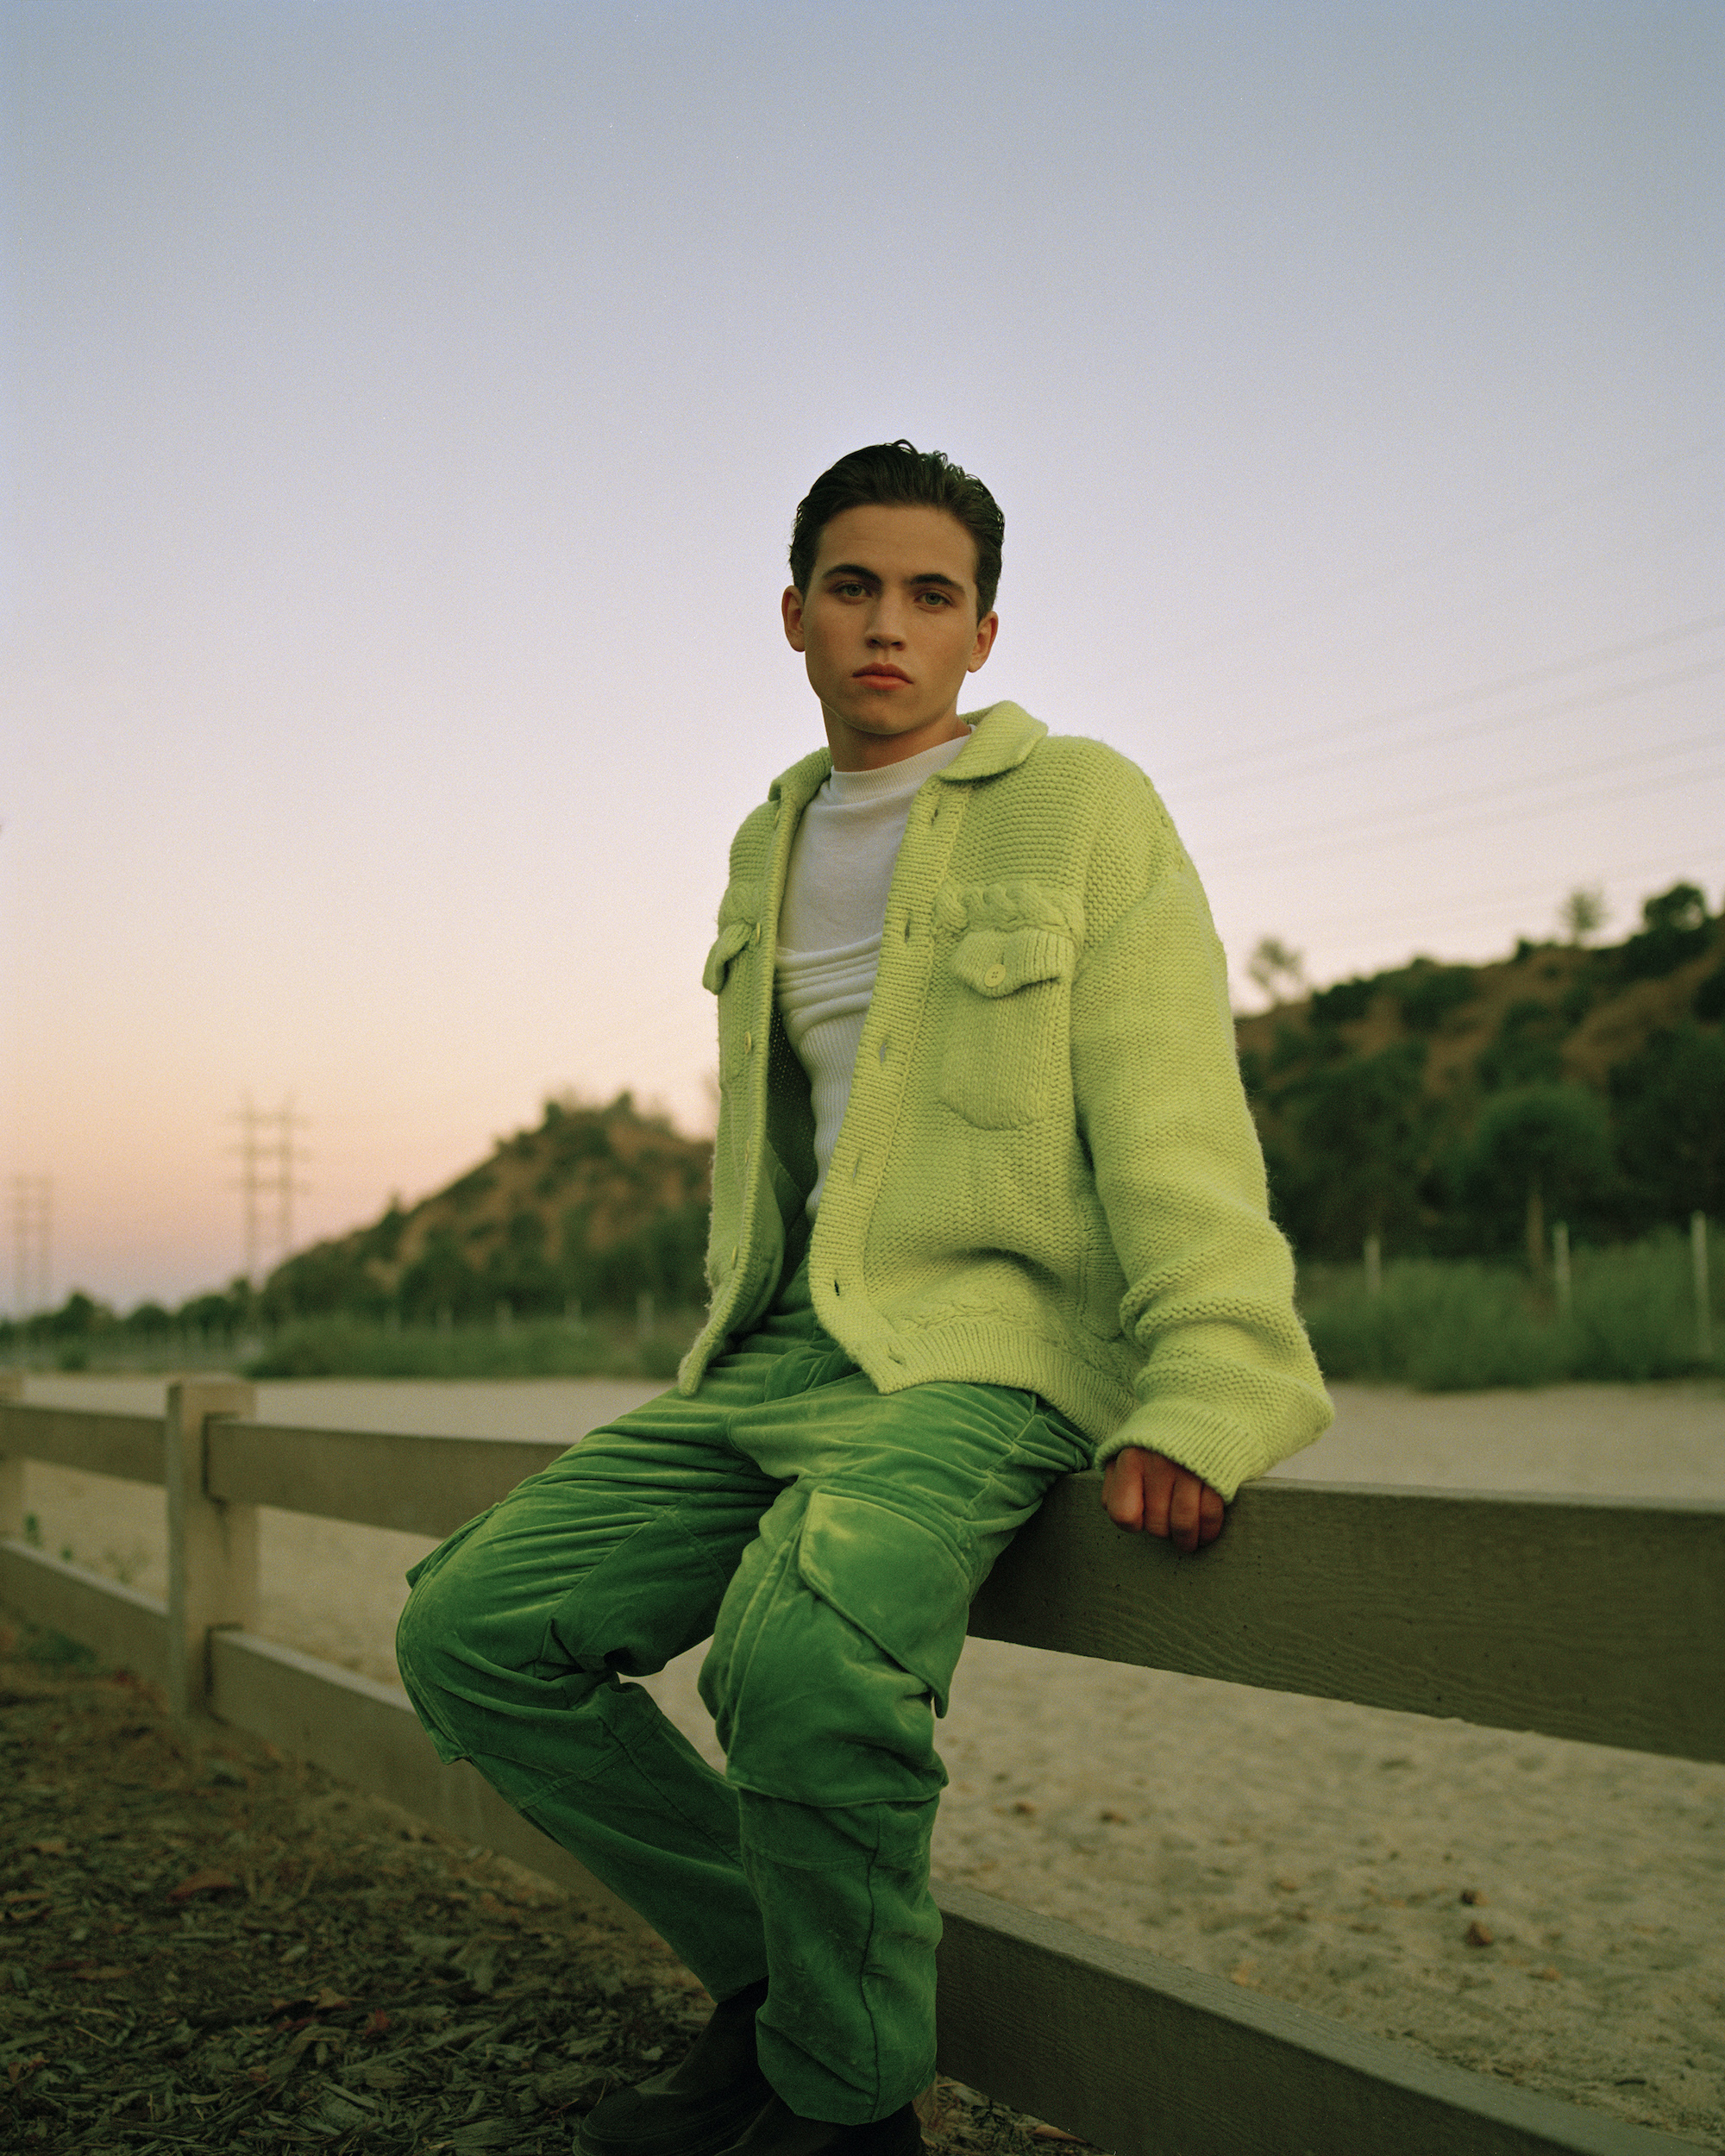 Tanner wearing green jacket and trousers